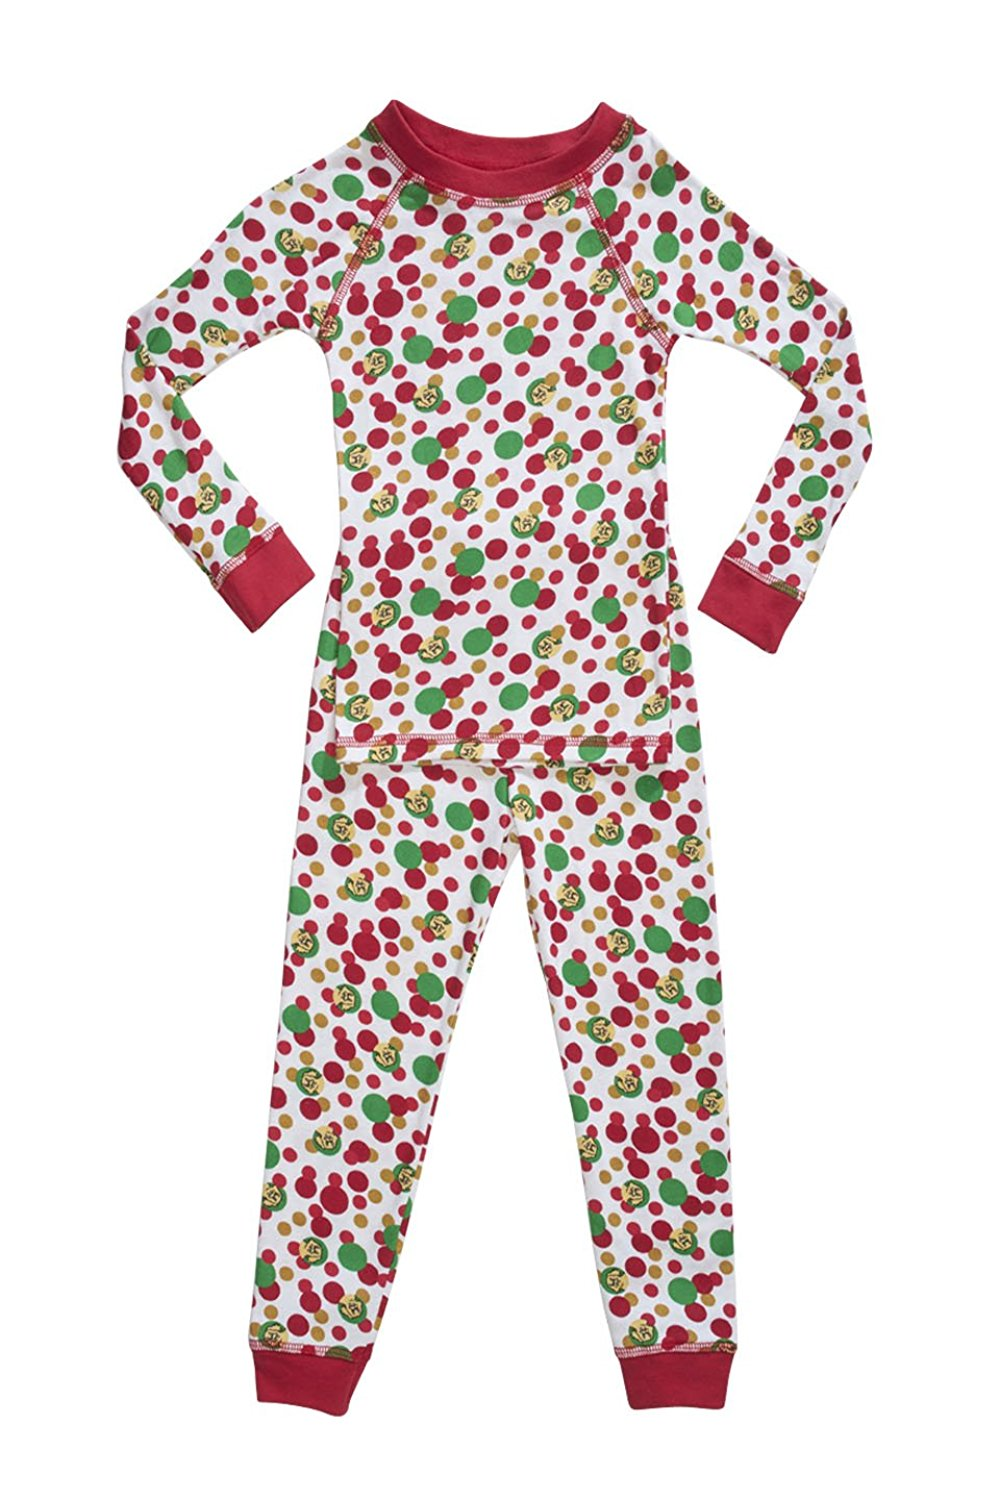 Brian the Pekingese 100% Organic Cotton Holiday Pajamas for Boys & Girls